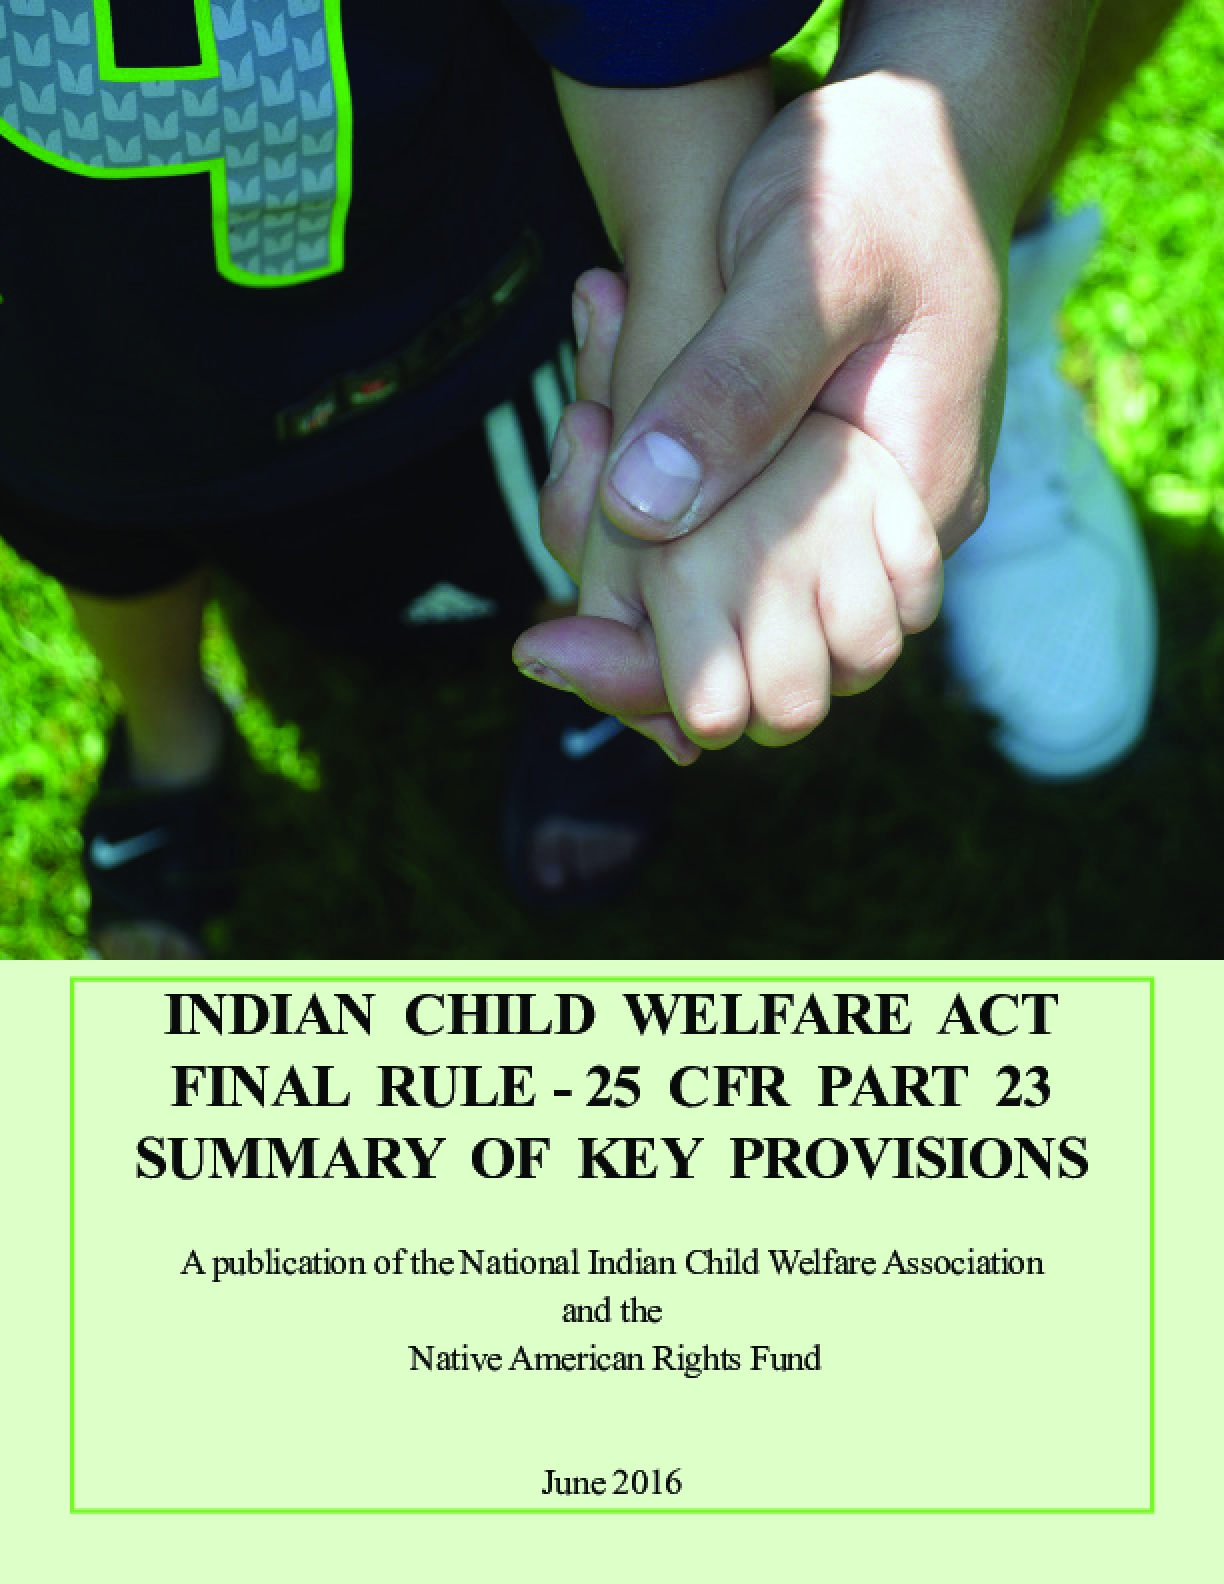 Indian Child Welfare Act Final Rule - 25 CFR Part 23 : Summary of Key Provisions